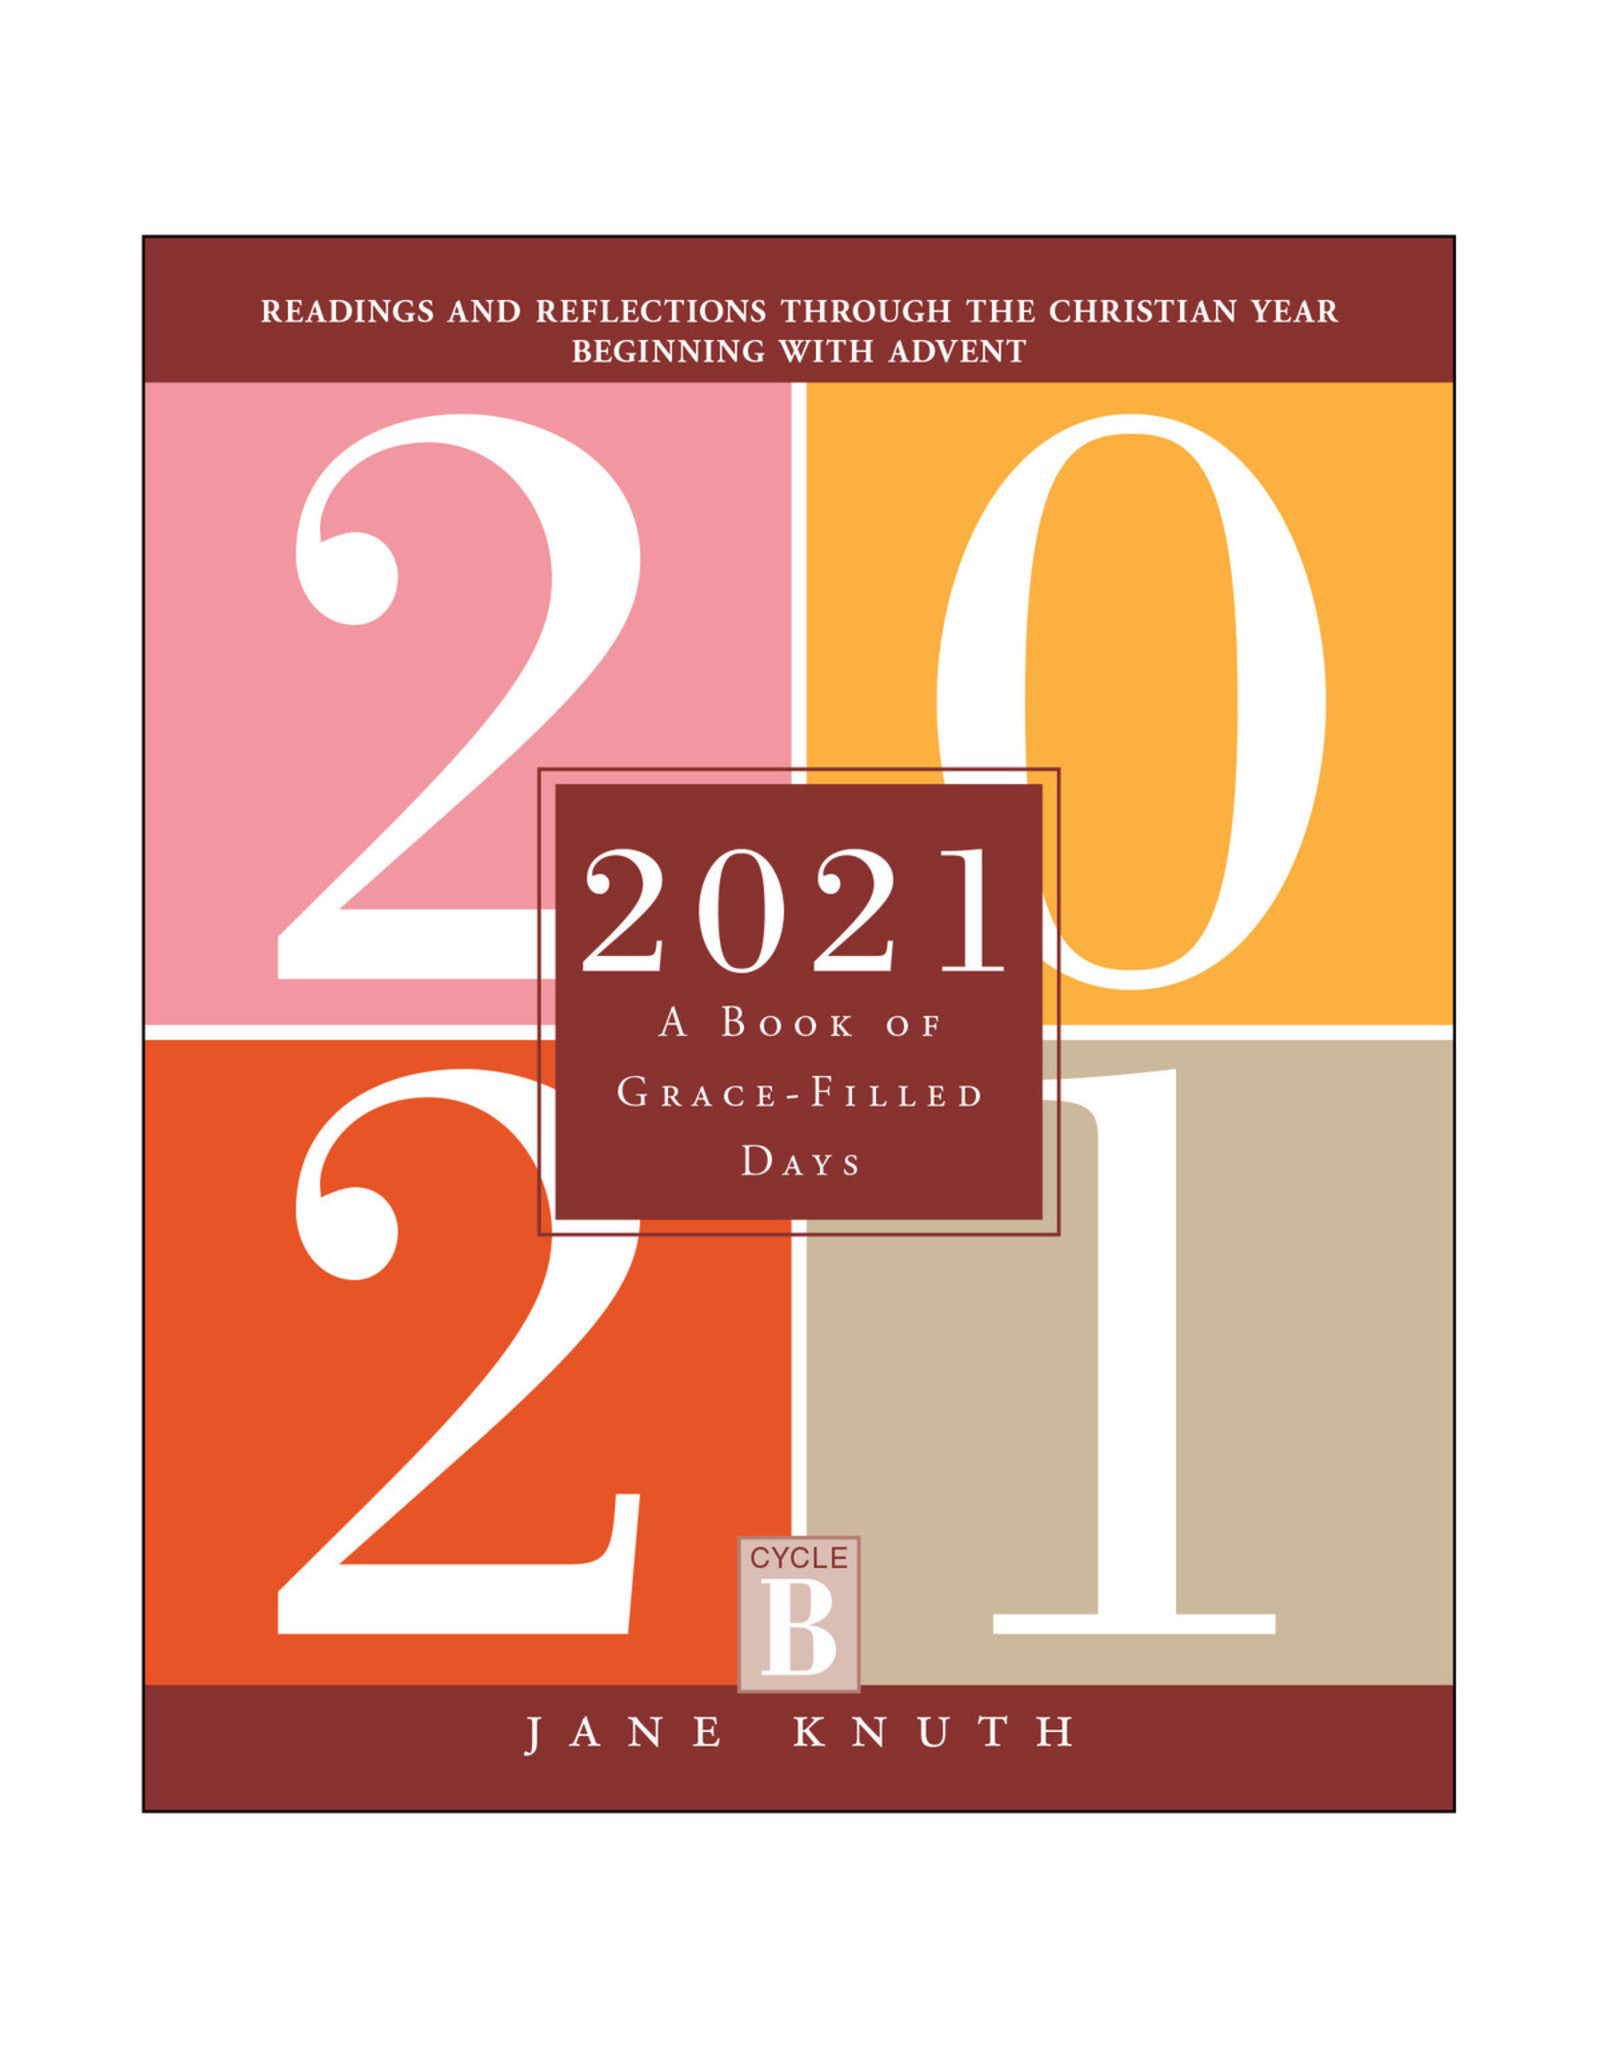 2021 BOOK OF GRACE FILLED DAYS